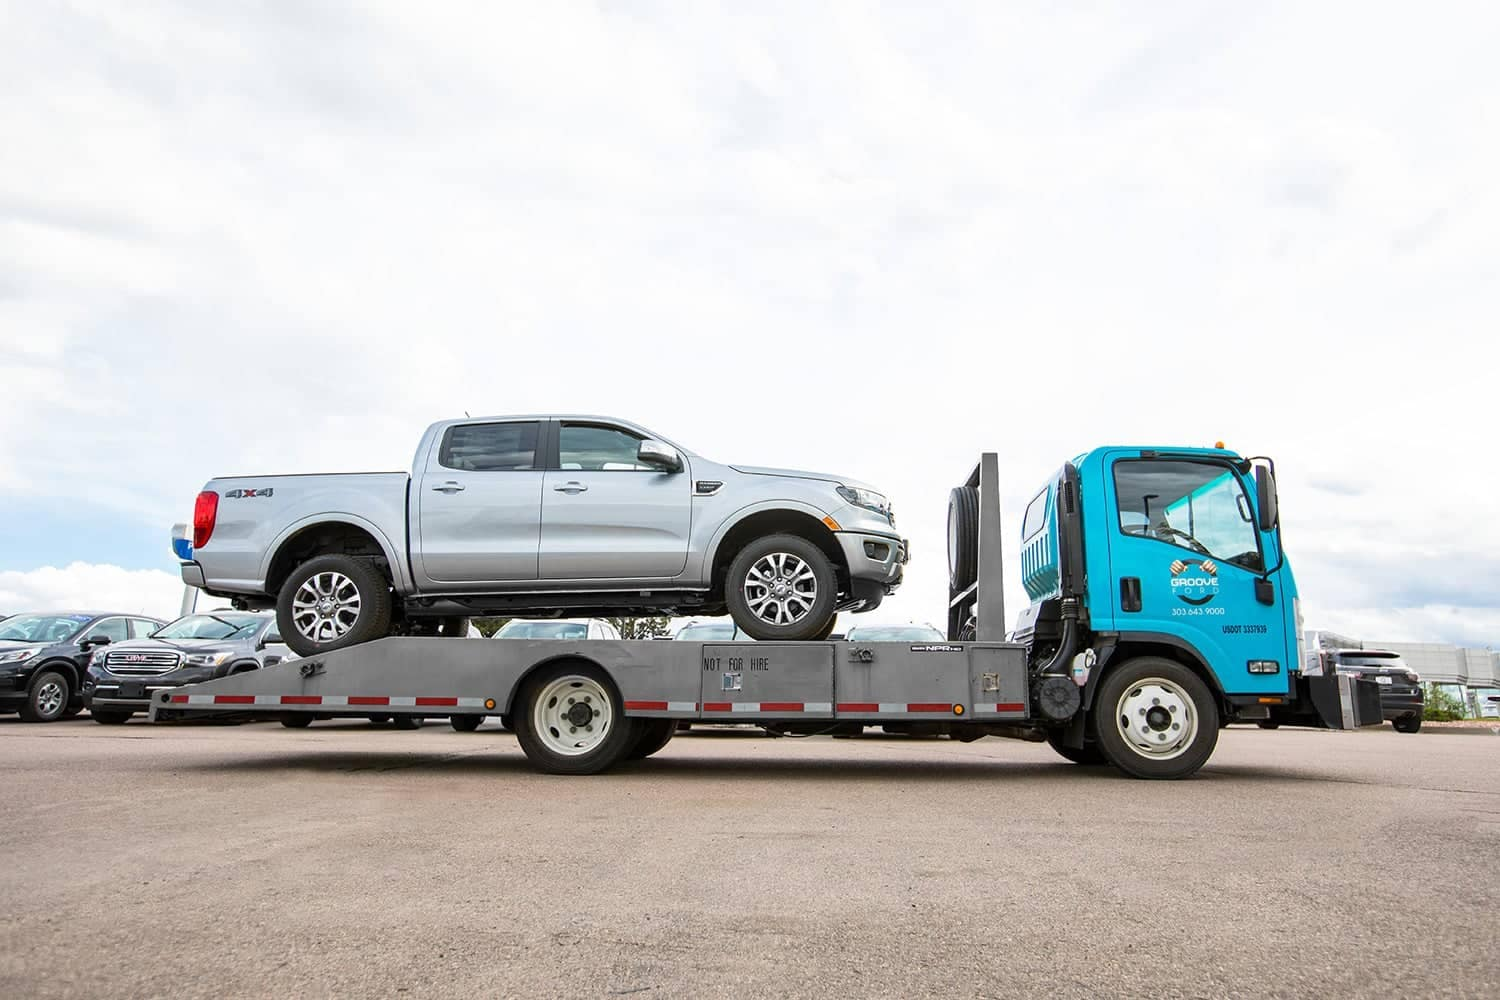 Groove Ford Tow Truck